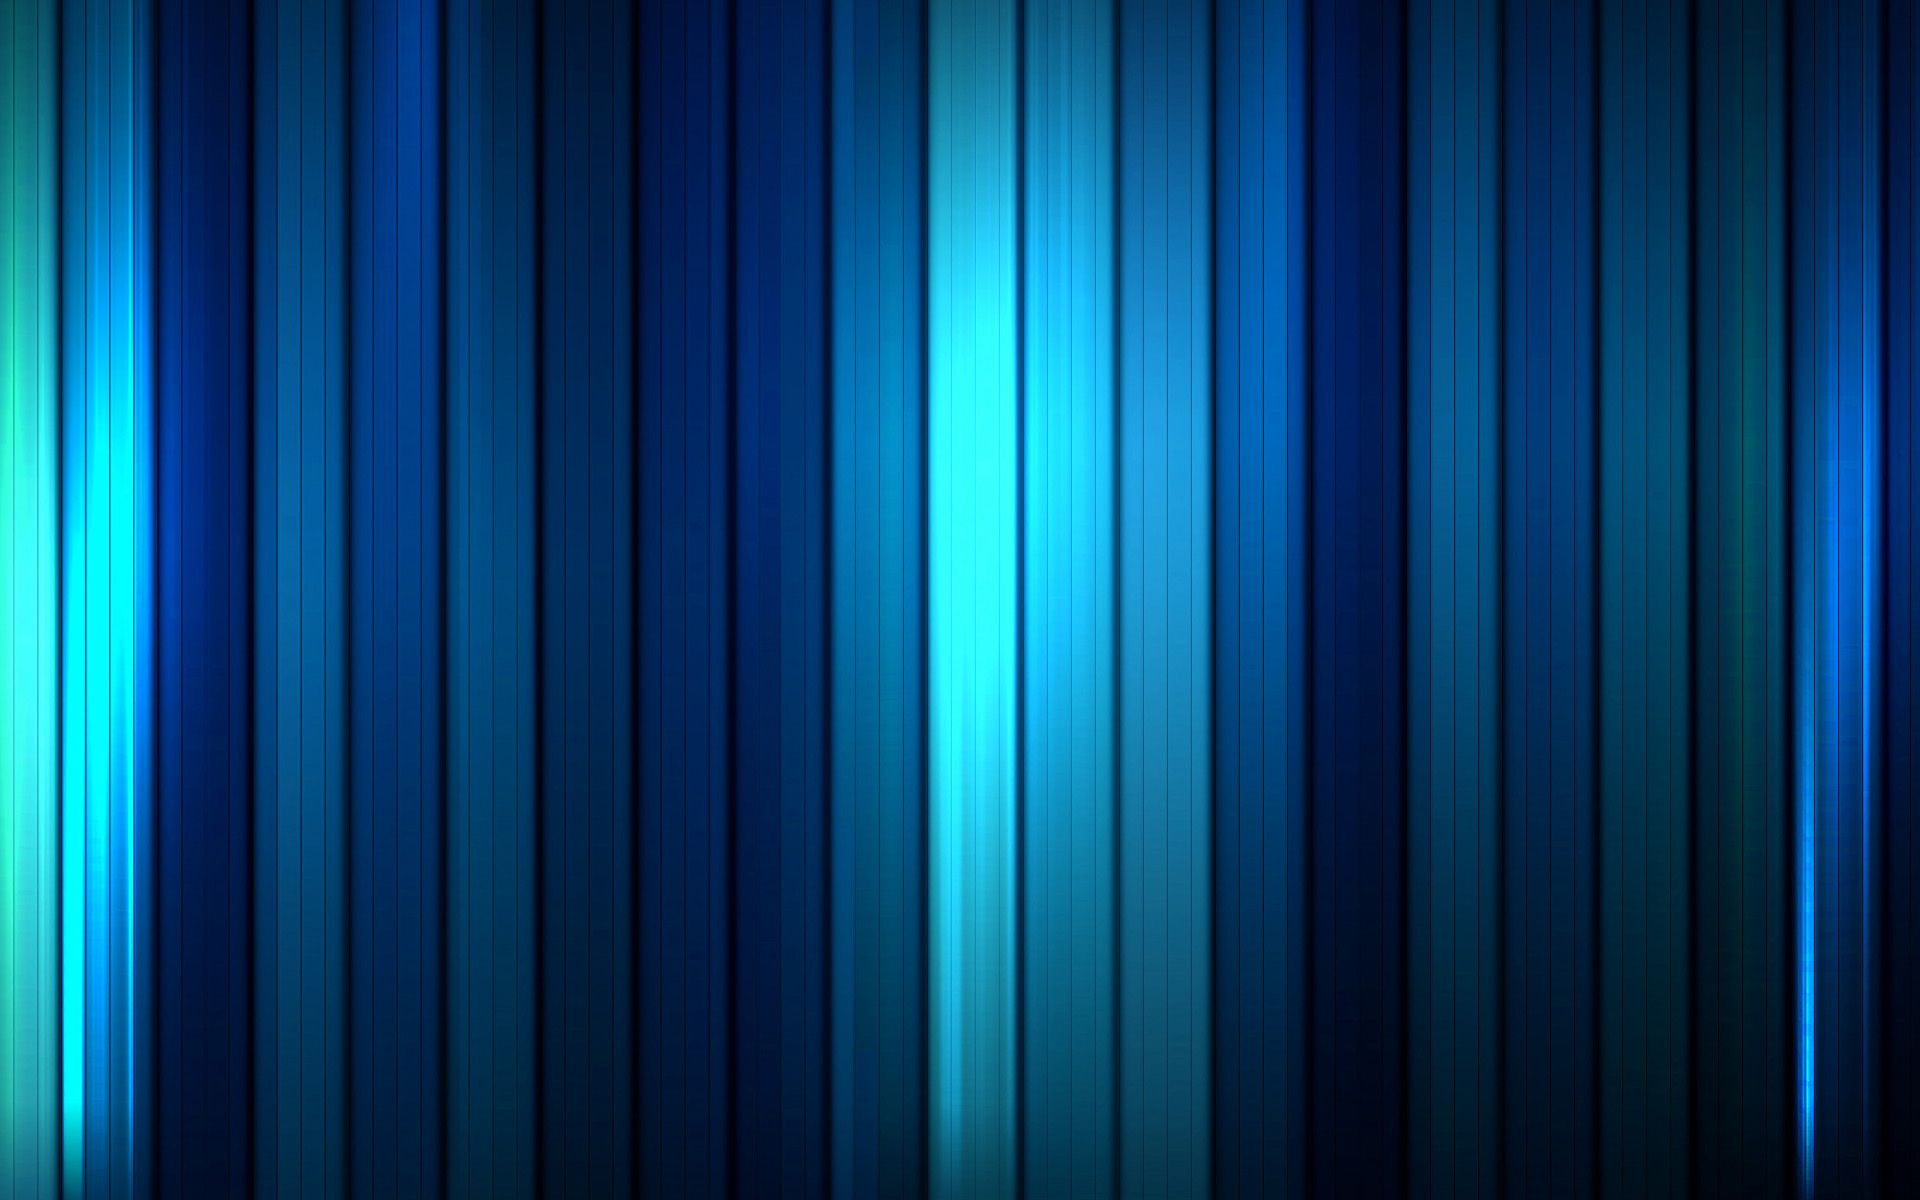 cool background - Free Large Images | Backgrounds | Pinterest ...